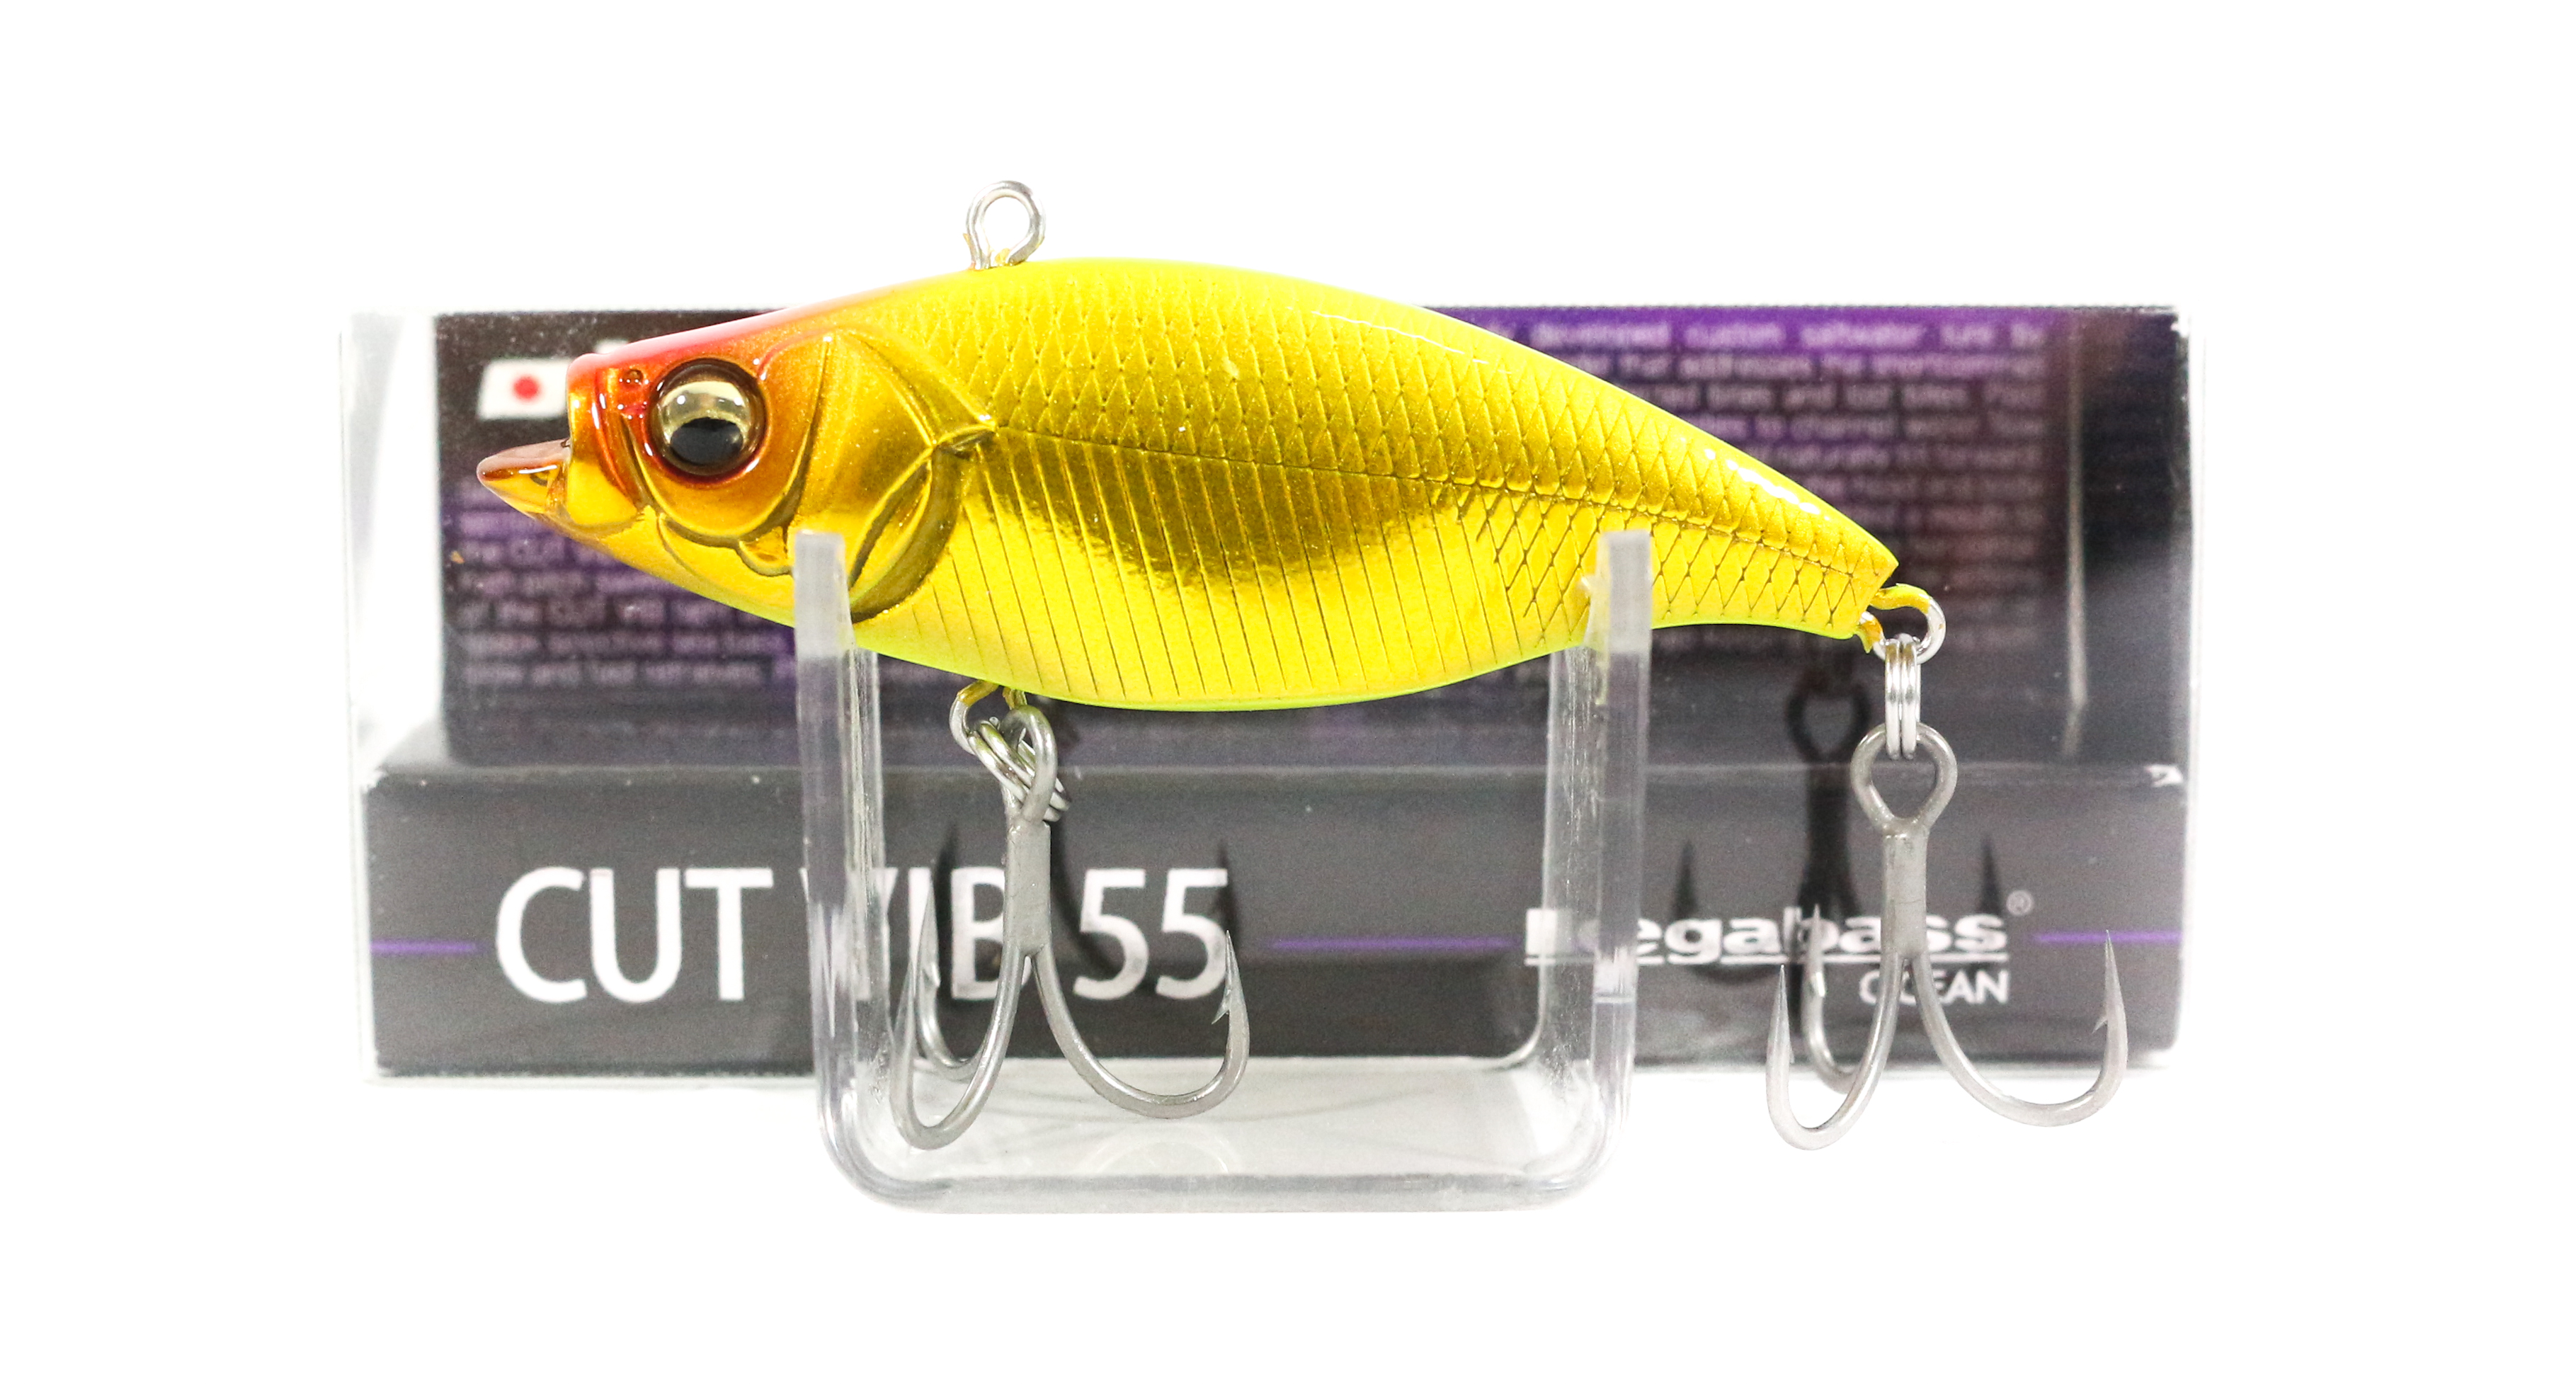 Megabass Cut Vib 55 Vibration Lure M Chart Back Gold (7365)